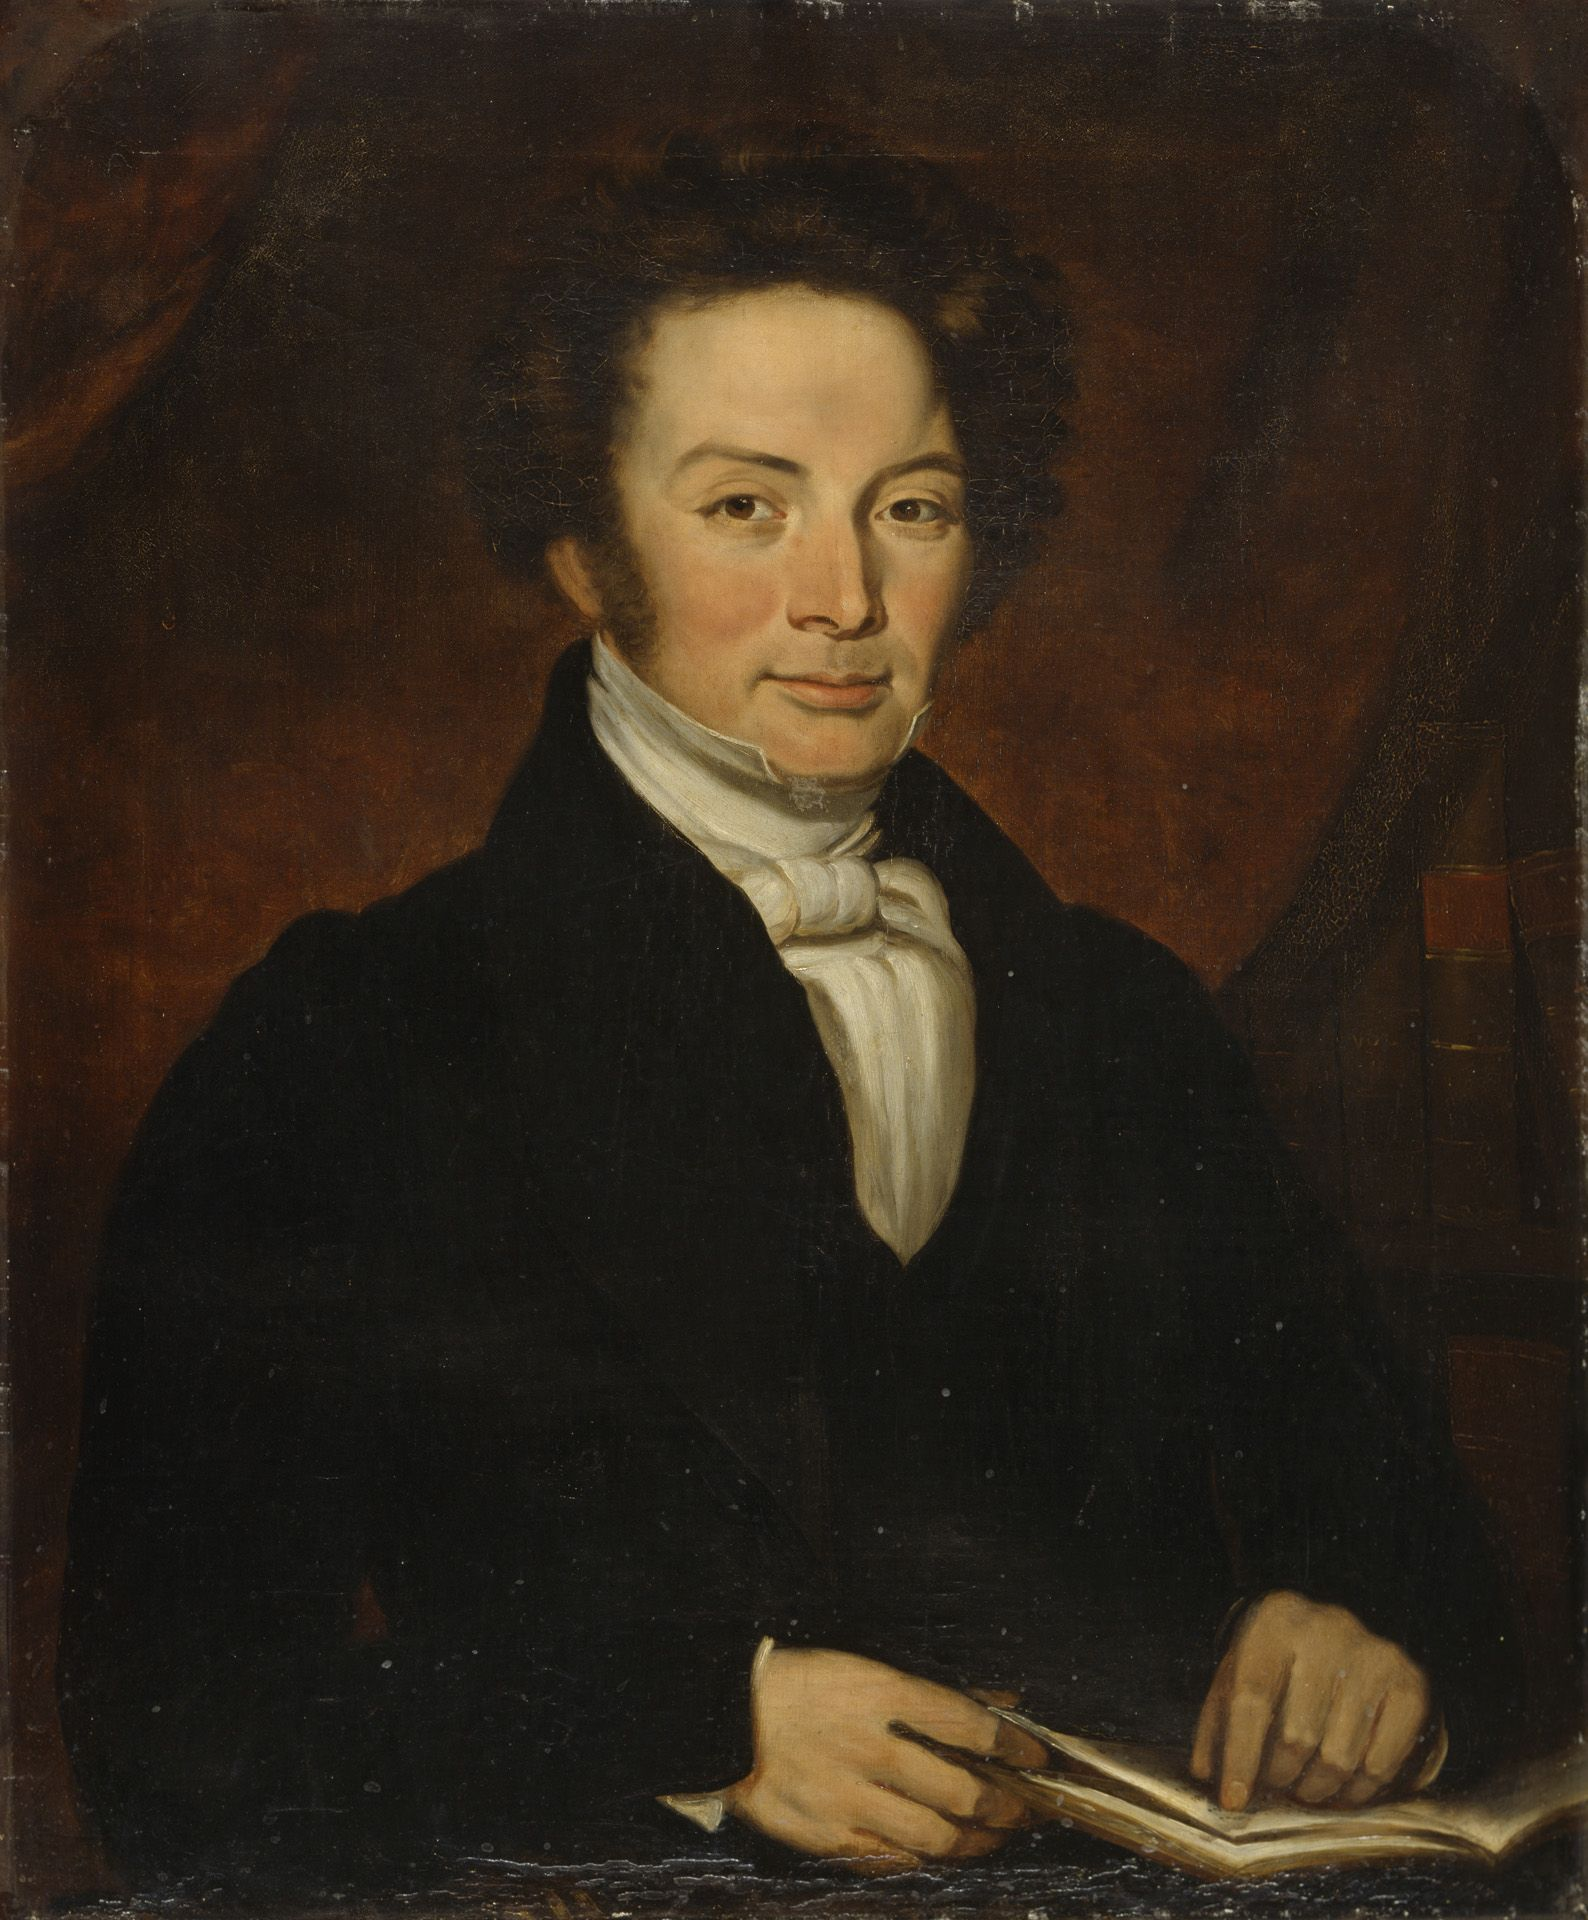 Reverend Evan Evans (1795-1855)